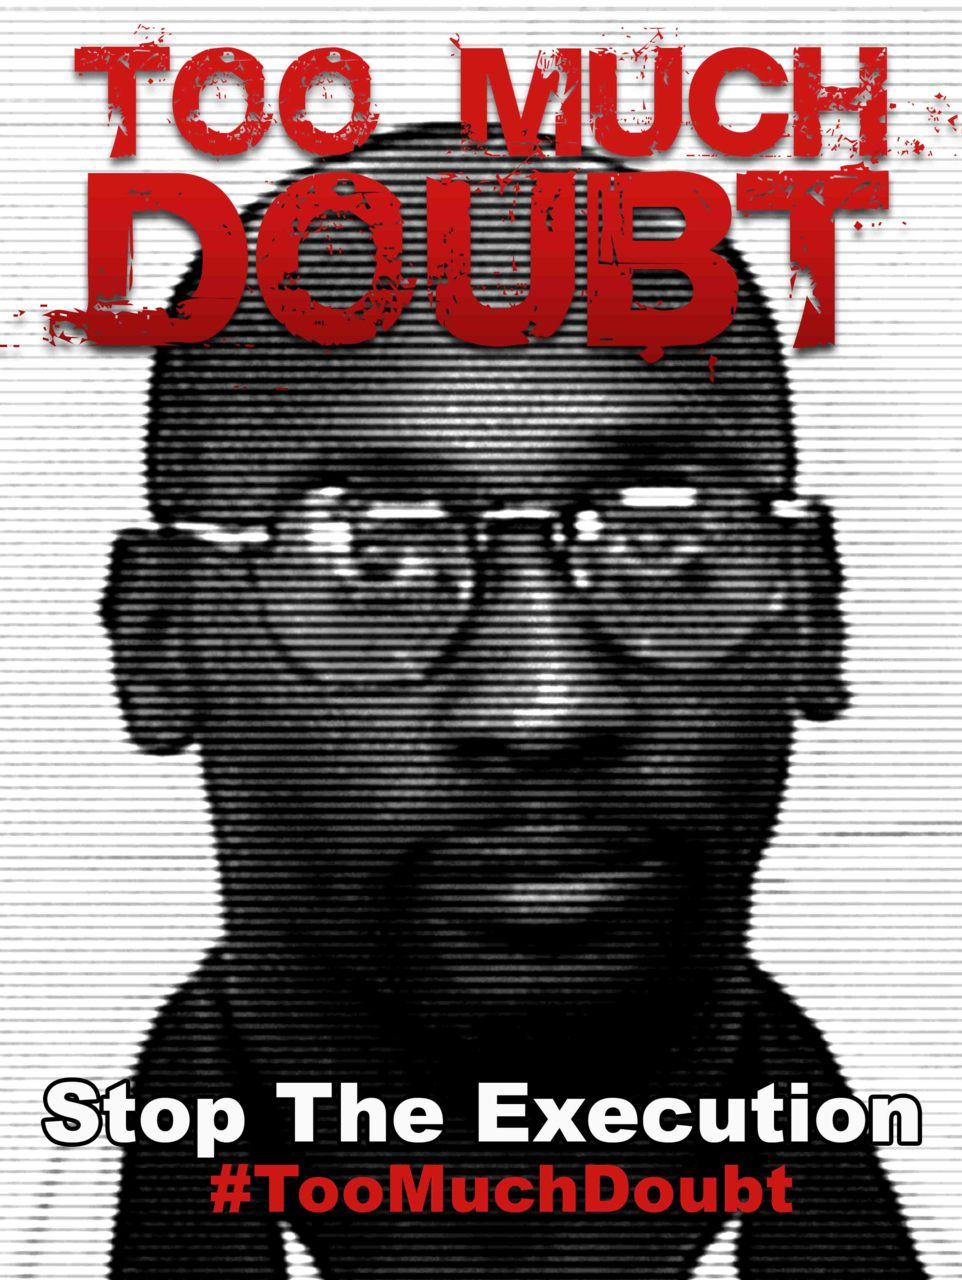 blunthought :        DON'T JUST LIKE OR REBLOG THIS POST! DO SOMETHING!        Stop the execution of Troy Davis.       Do not let him be denied life in a case of question marks and racism.        Sign Petition , call Georgia state legislature, create the change that needs to happen!       Do not let Troy Davis be murdered by Georgia.       The only difference that I have here is that 'reasonable doubt' has nothing to do with my support of trying to avoid the execution of Troy Davis. NO human being deserves to die at the hands of another human. PERIOD.